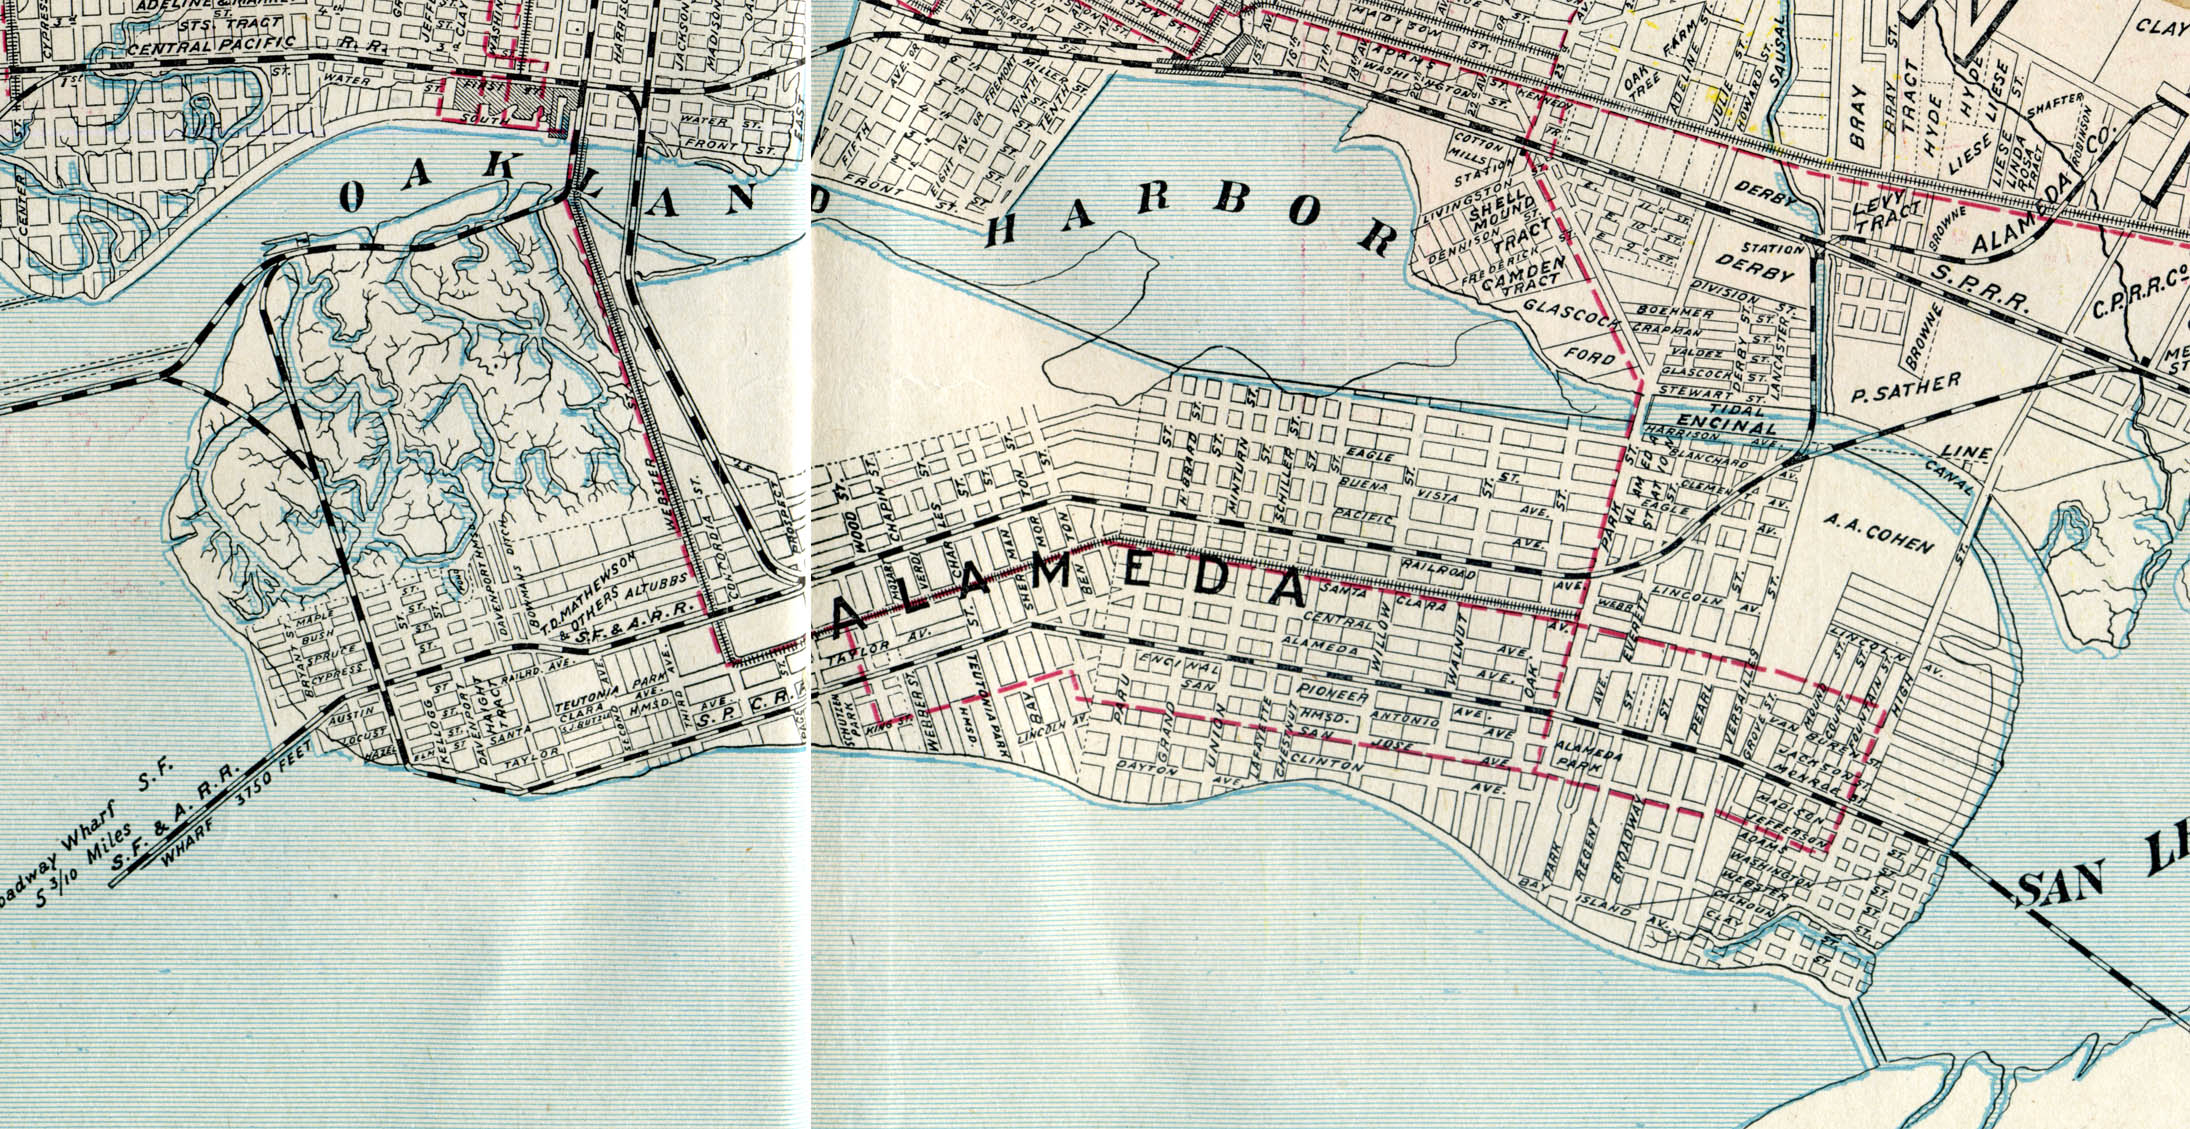 Alameda California Map Alameda, California, 1908 old map – Alamedainfo Alameda California Map